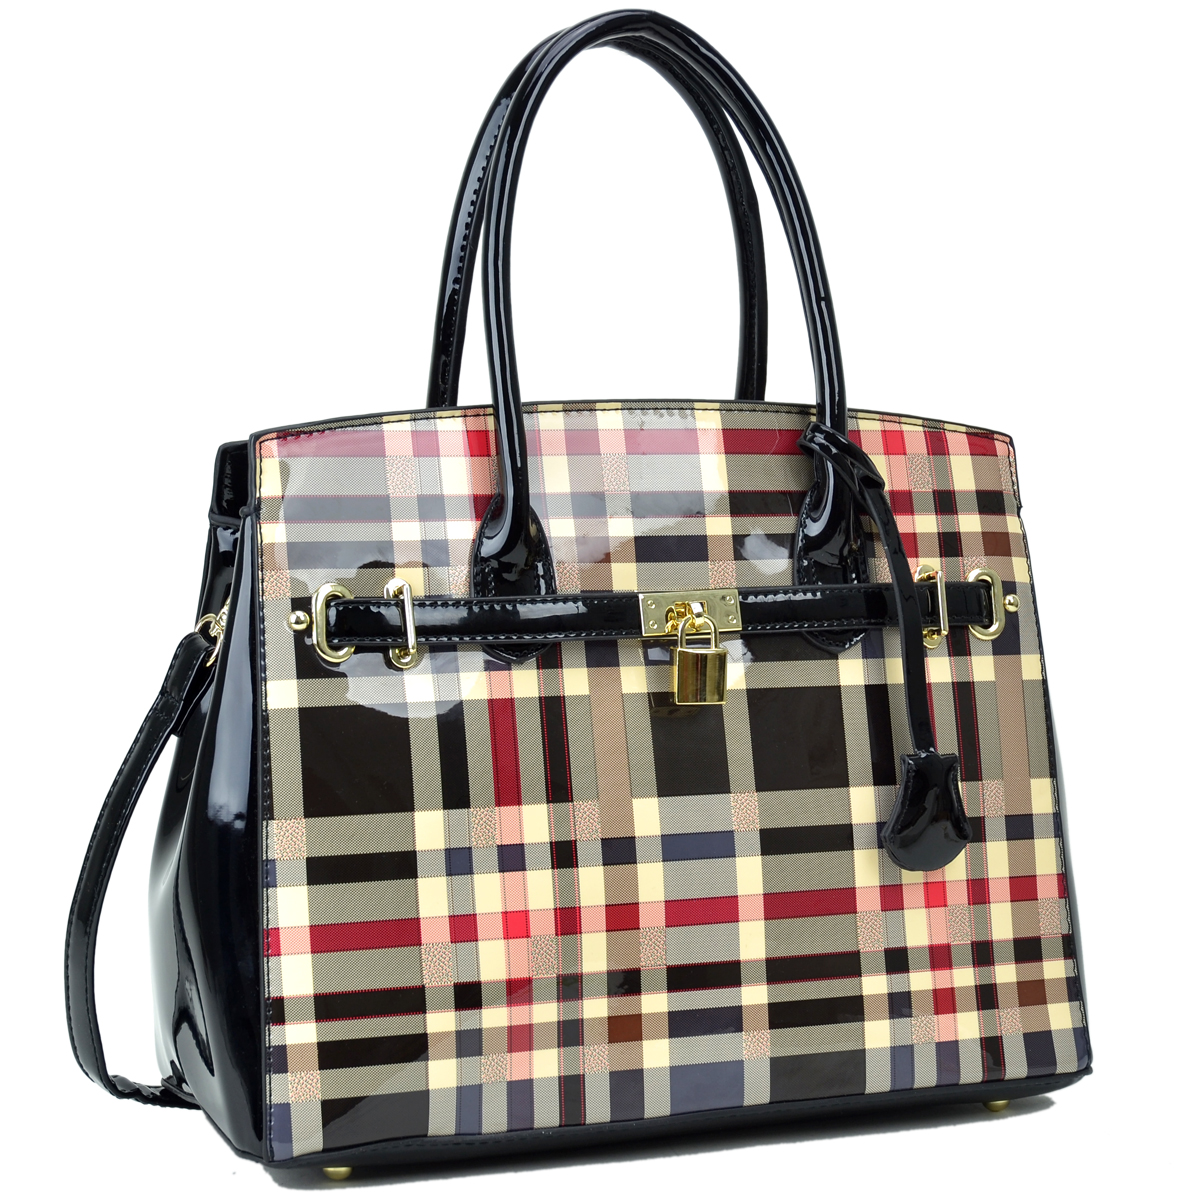 Plaid Design Patent Leather Medium Satchel with padlock deco